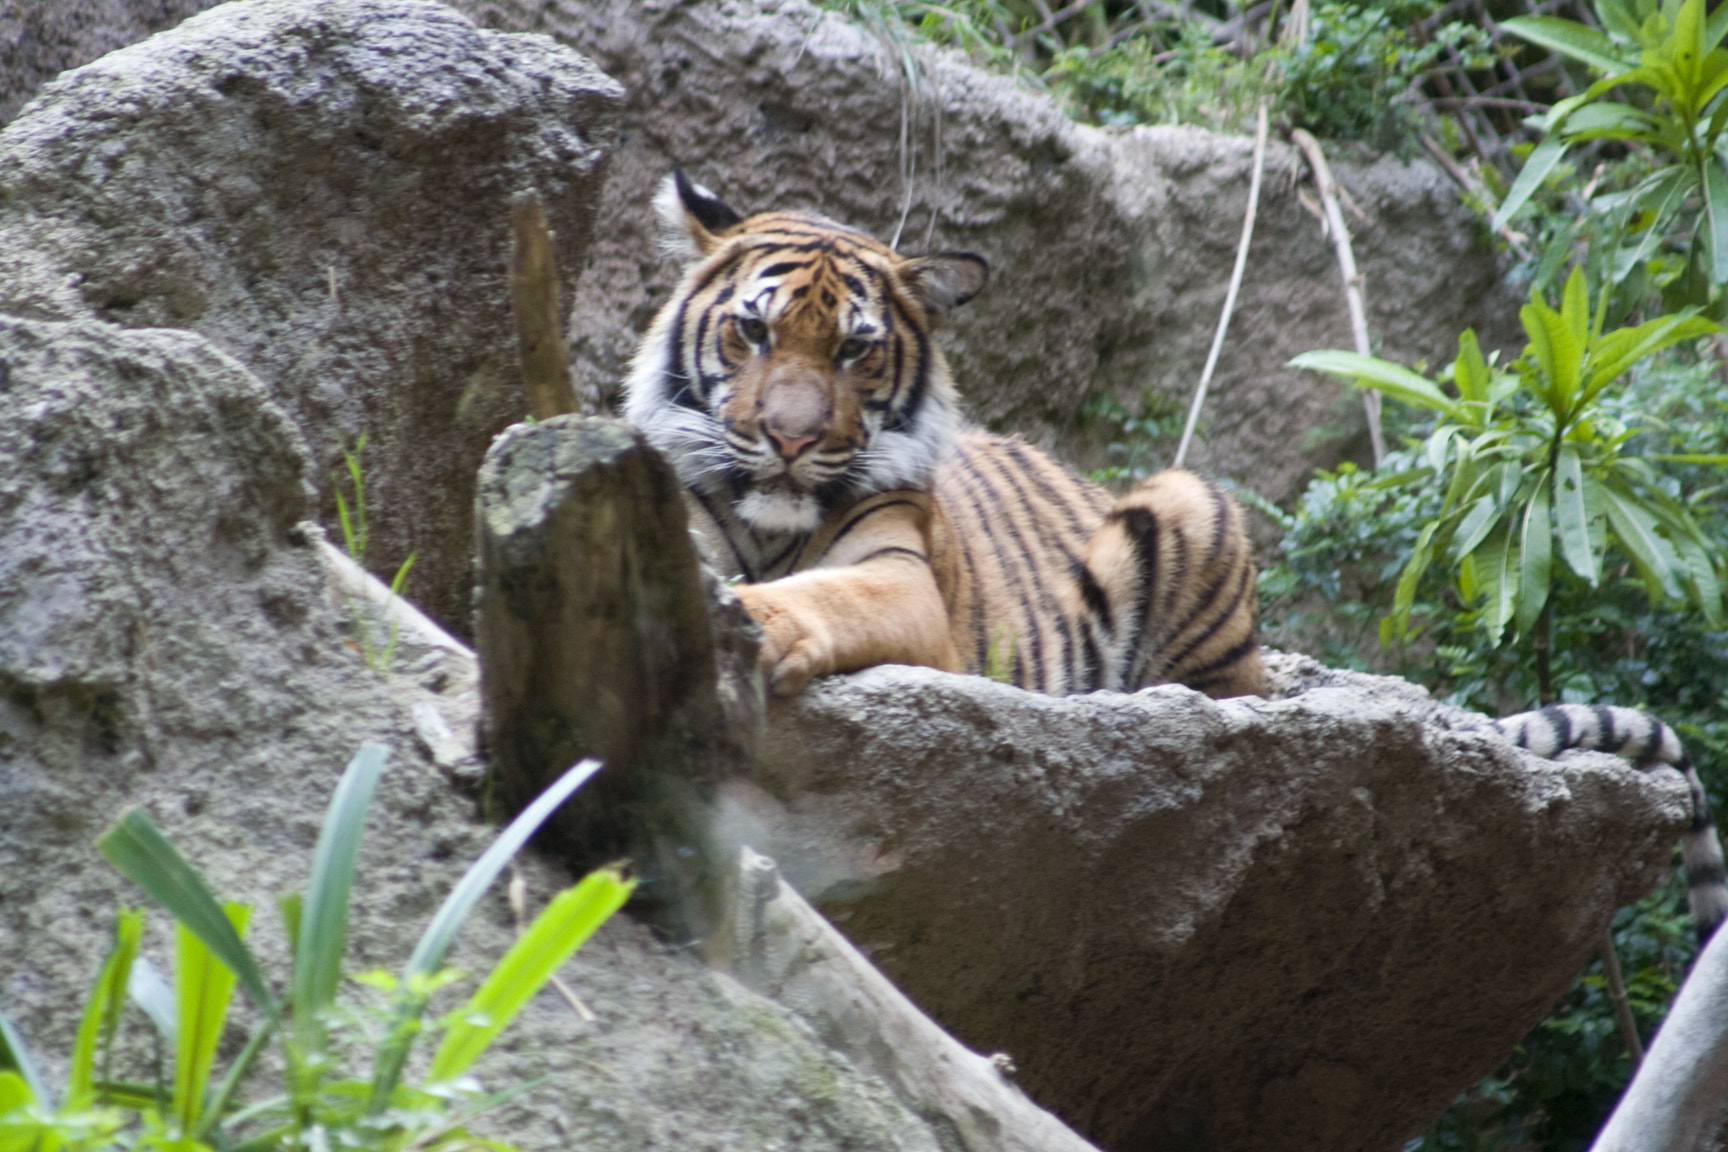 Photograph Tiger_000 by Kelly Spellman on 500px